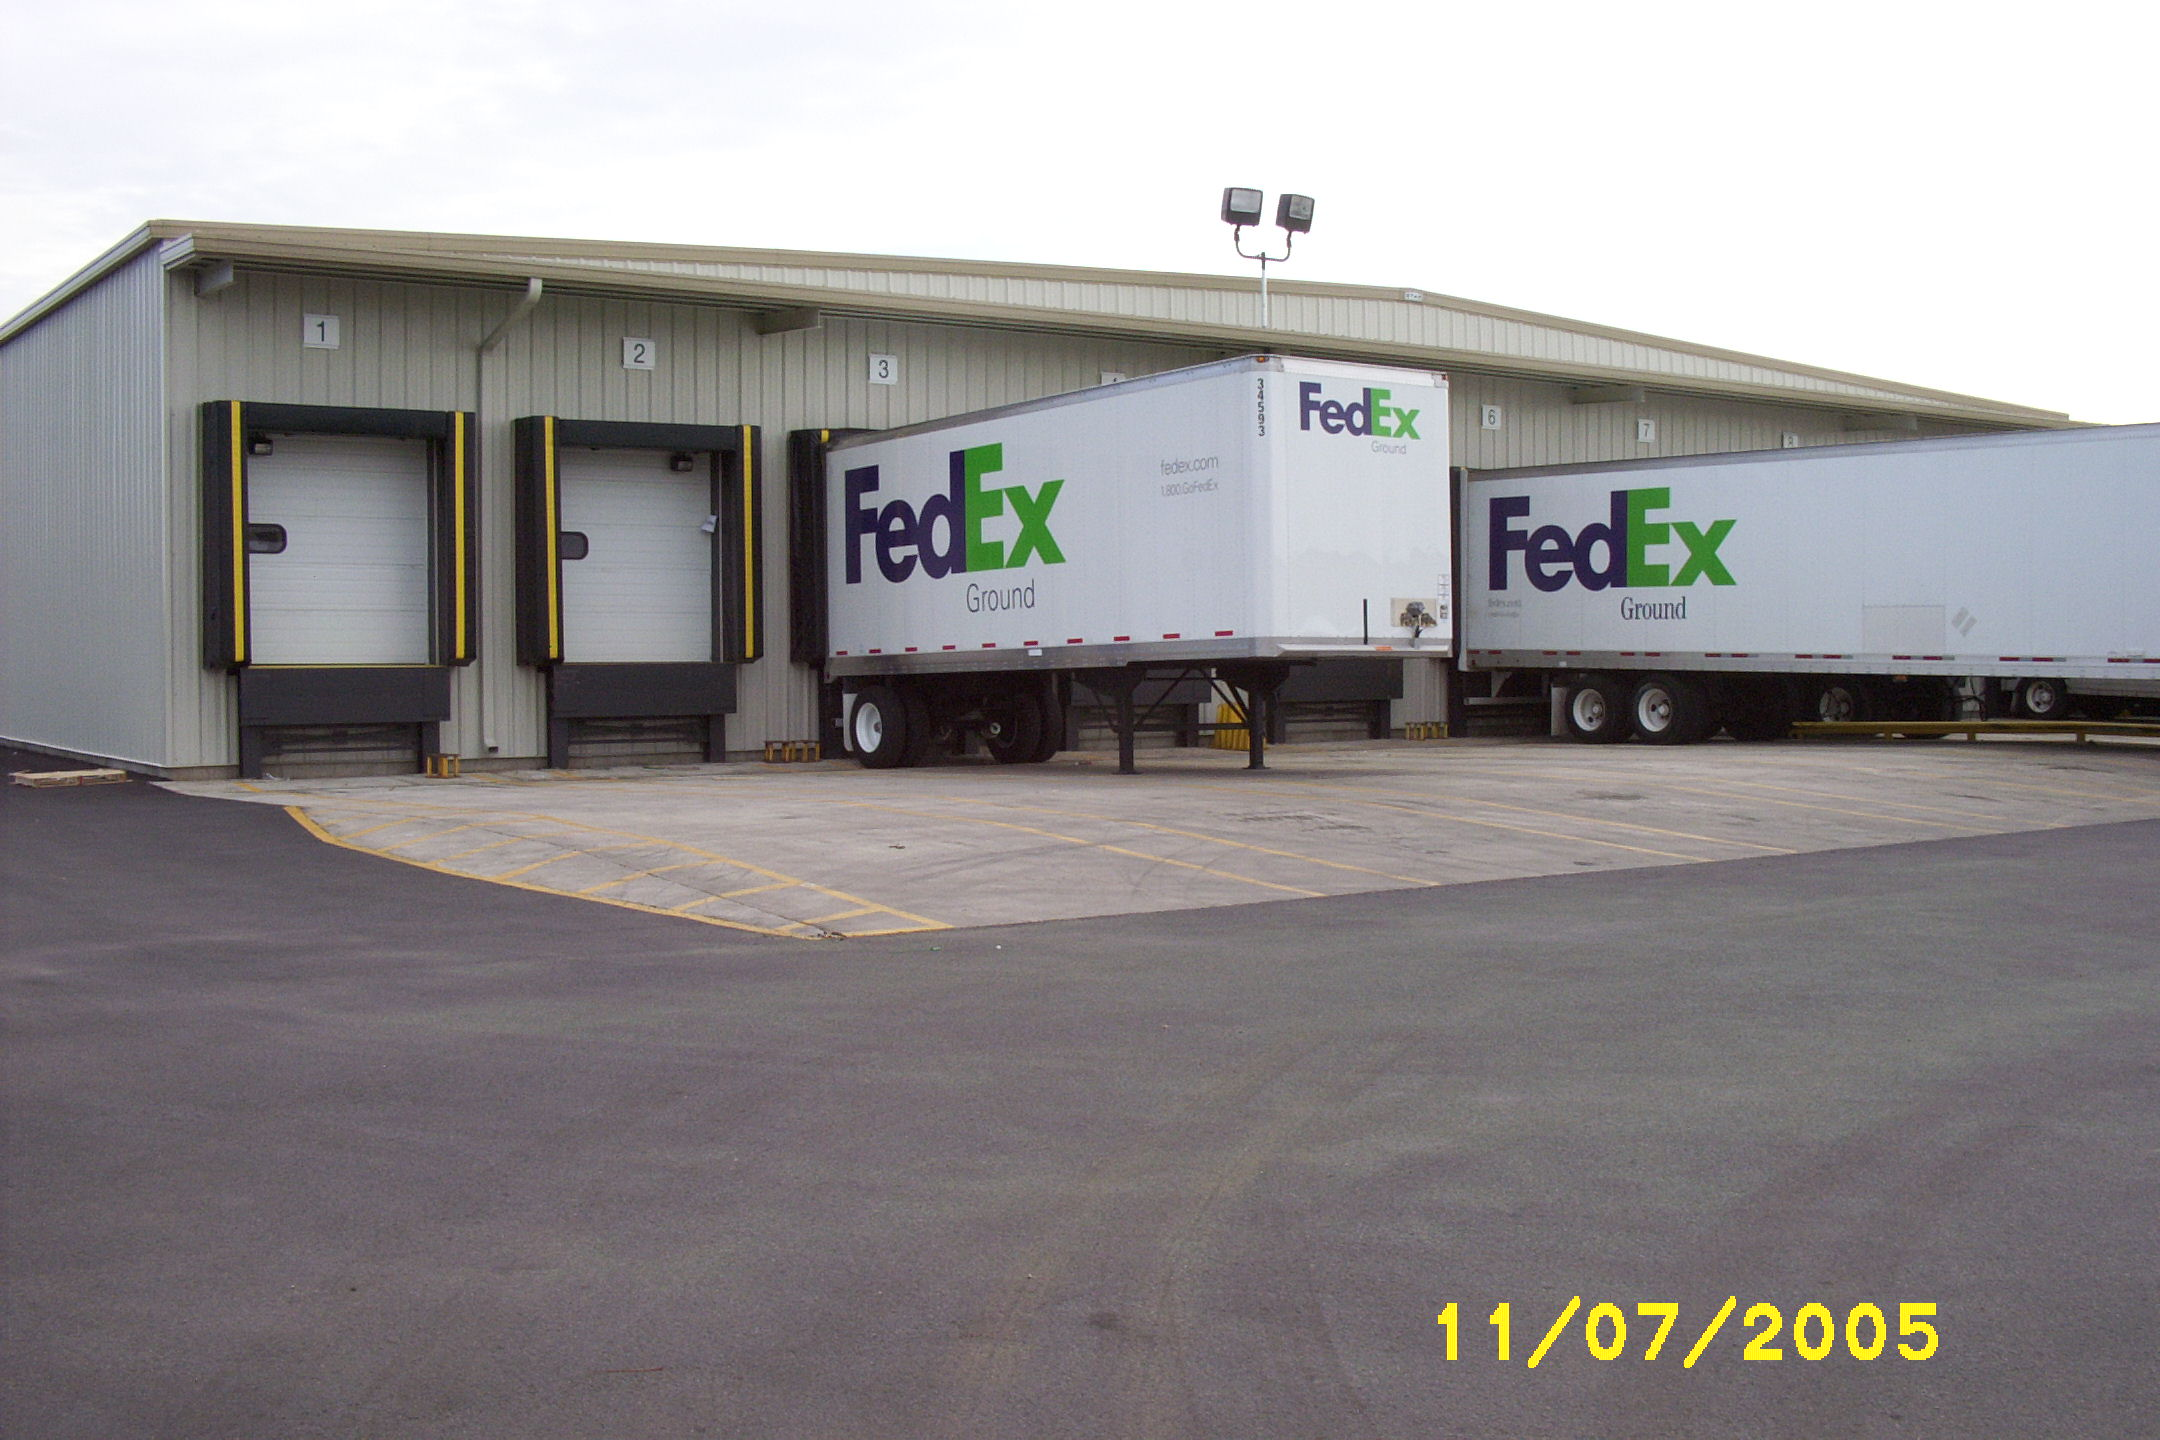 Industrial - FedEx Ground Rockford, IL